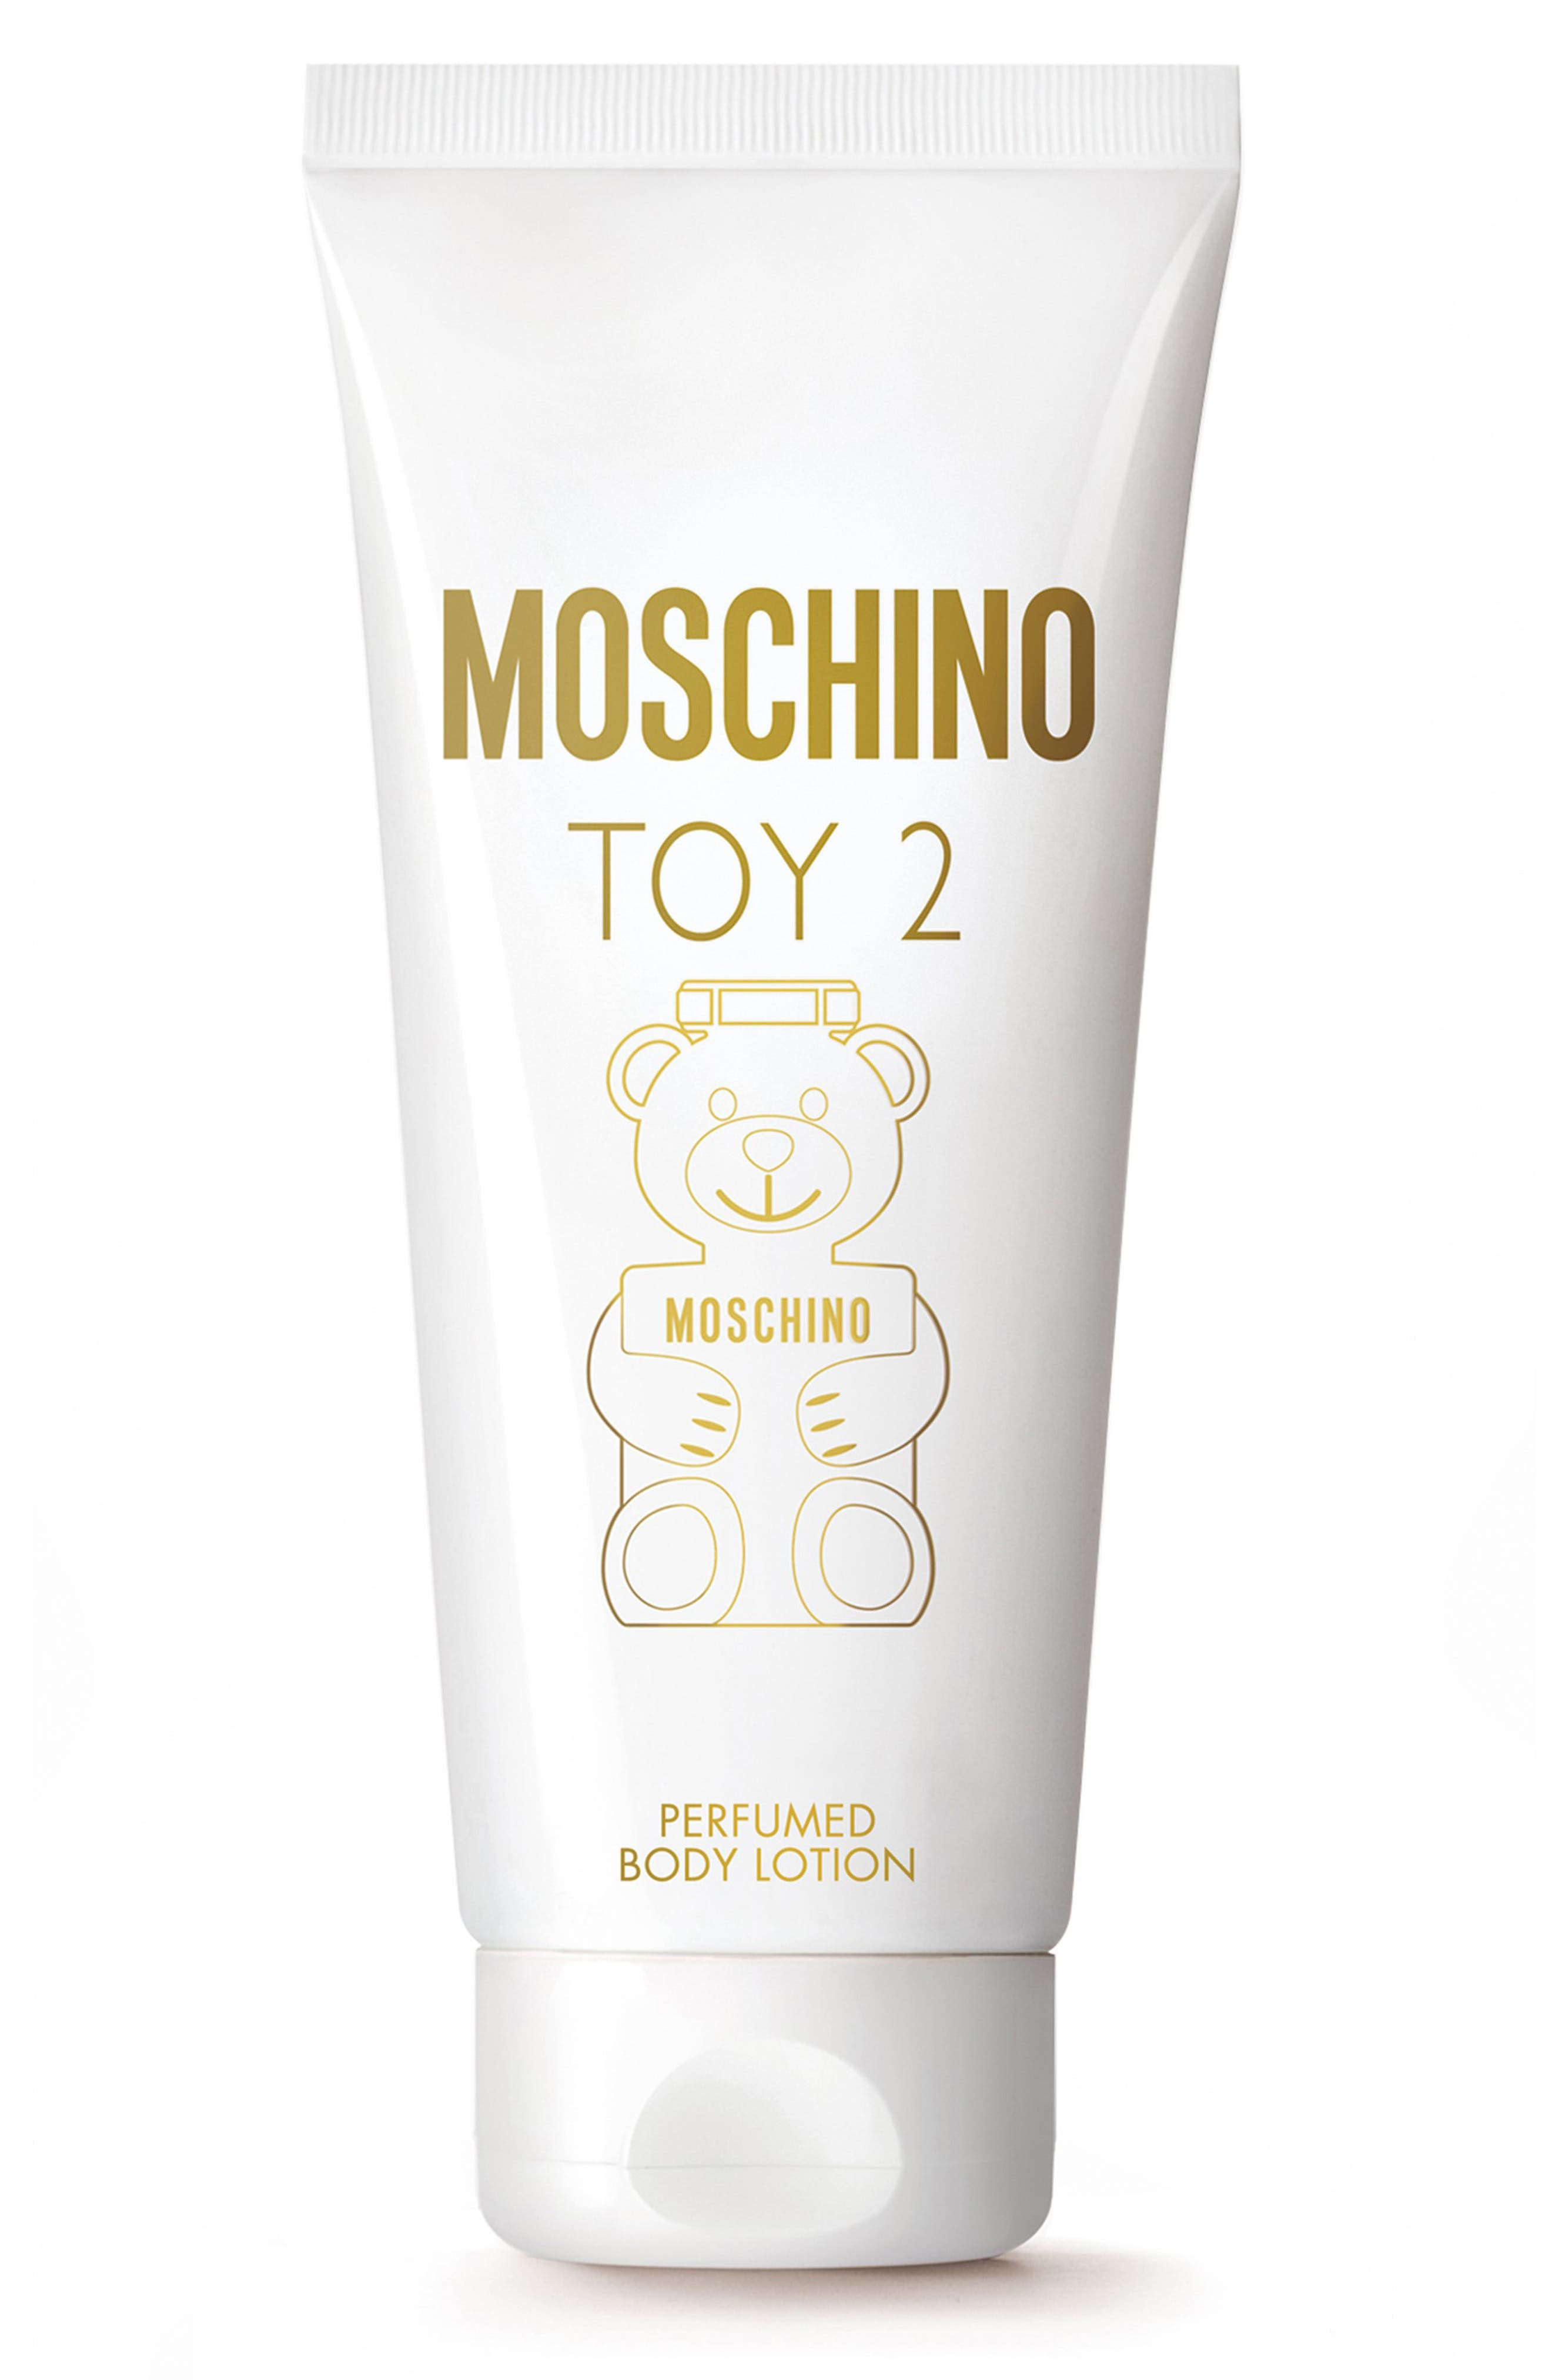 MOSCHINO Toy 2 Perfumed Body Lotion, Main, color, NO COLOR